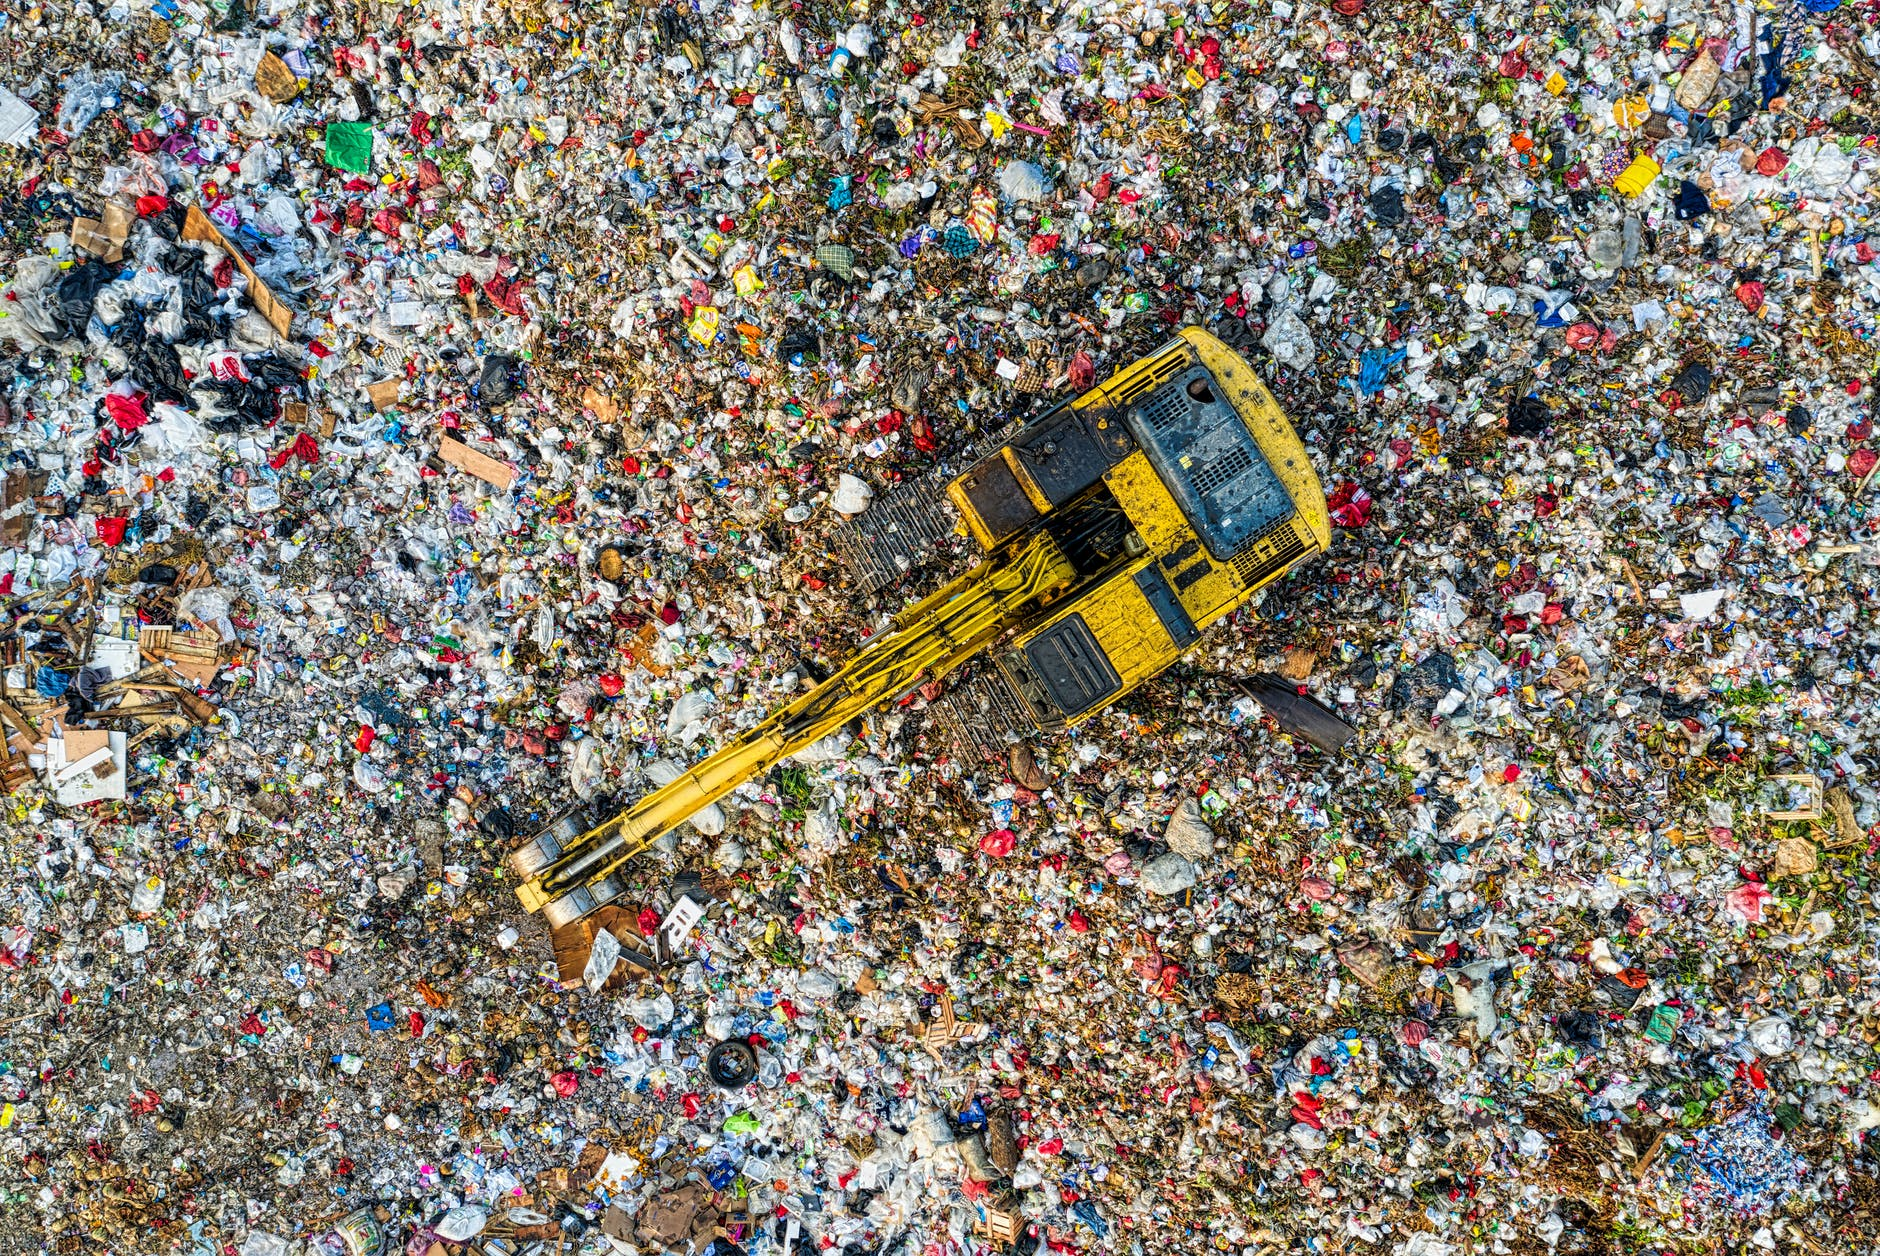 bird s eye view of landfill during daytime